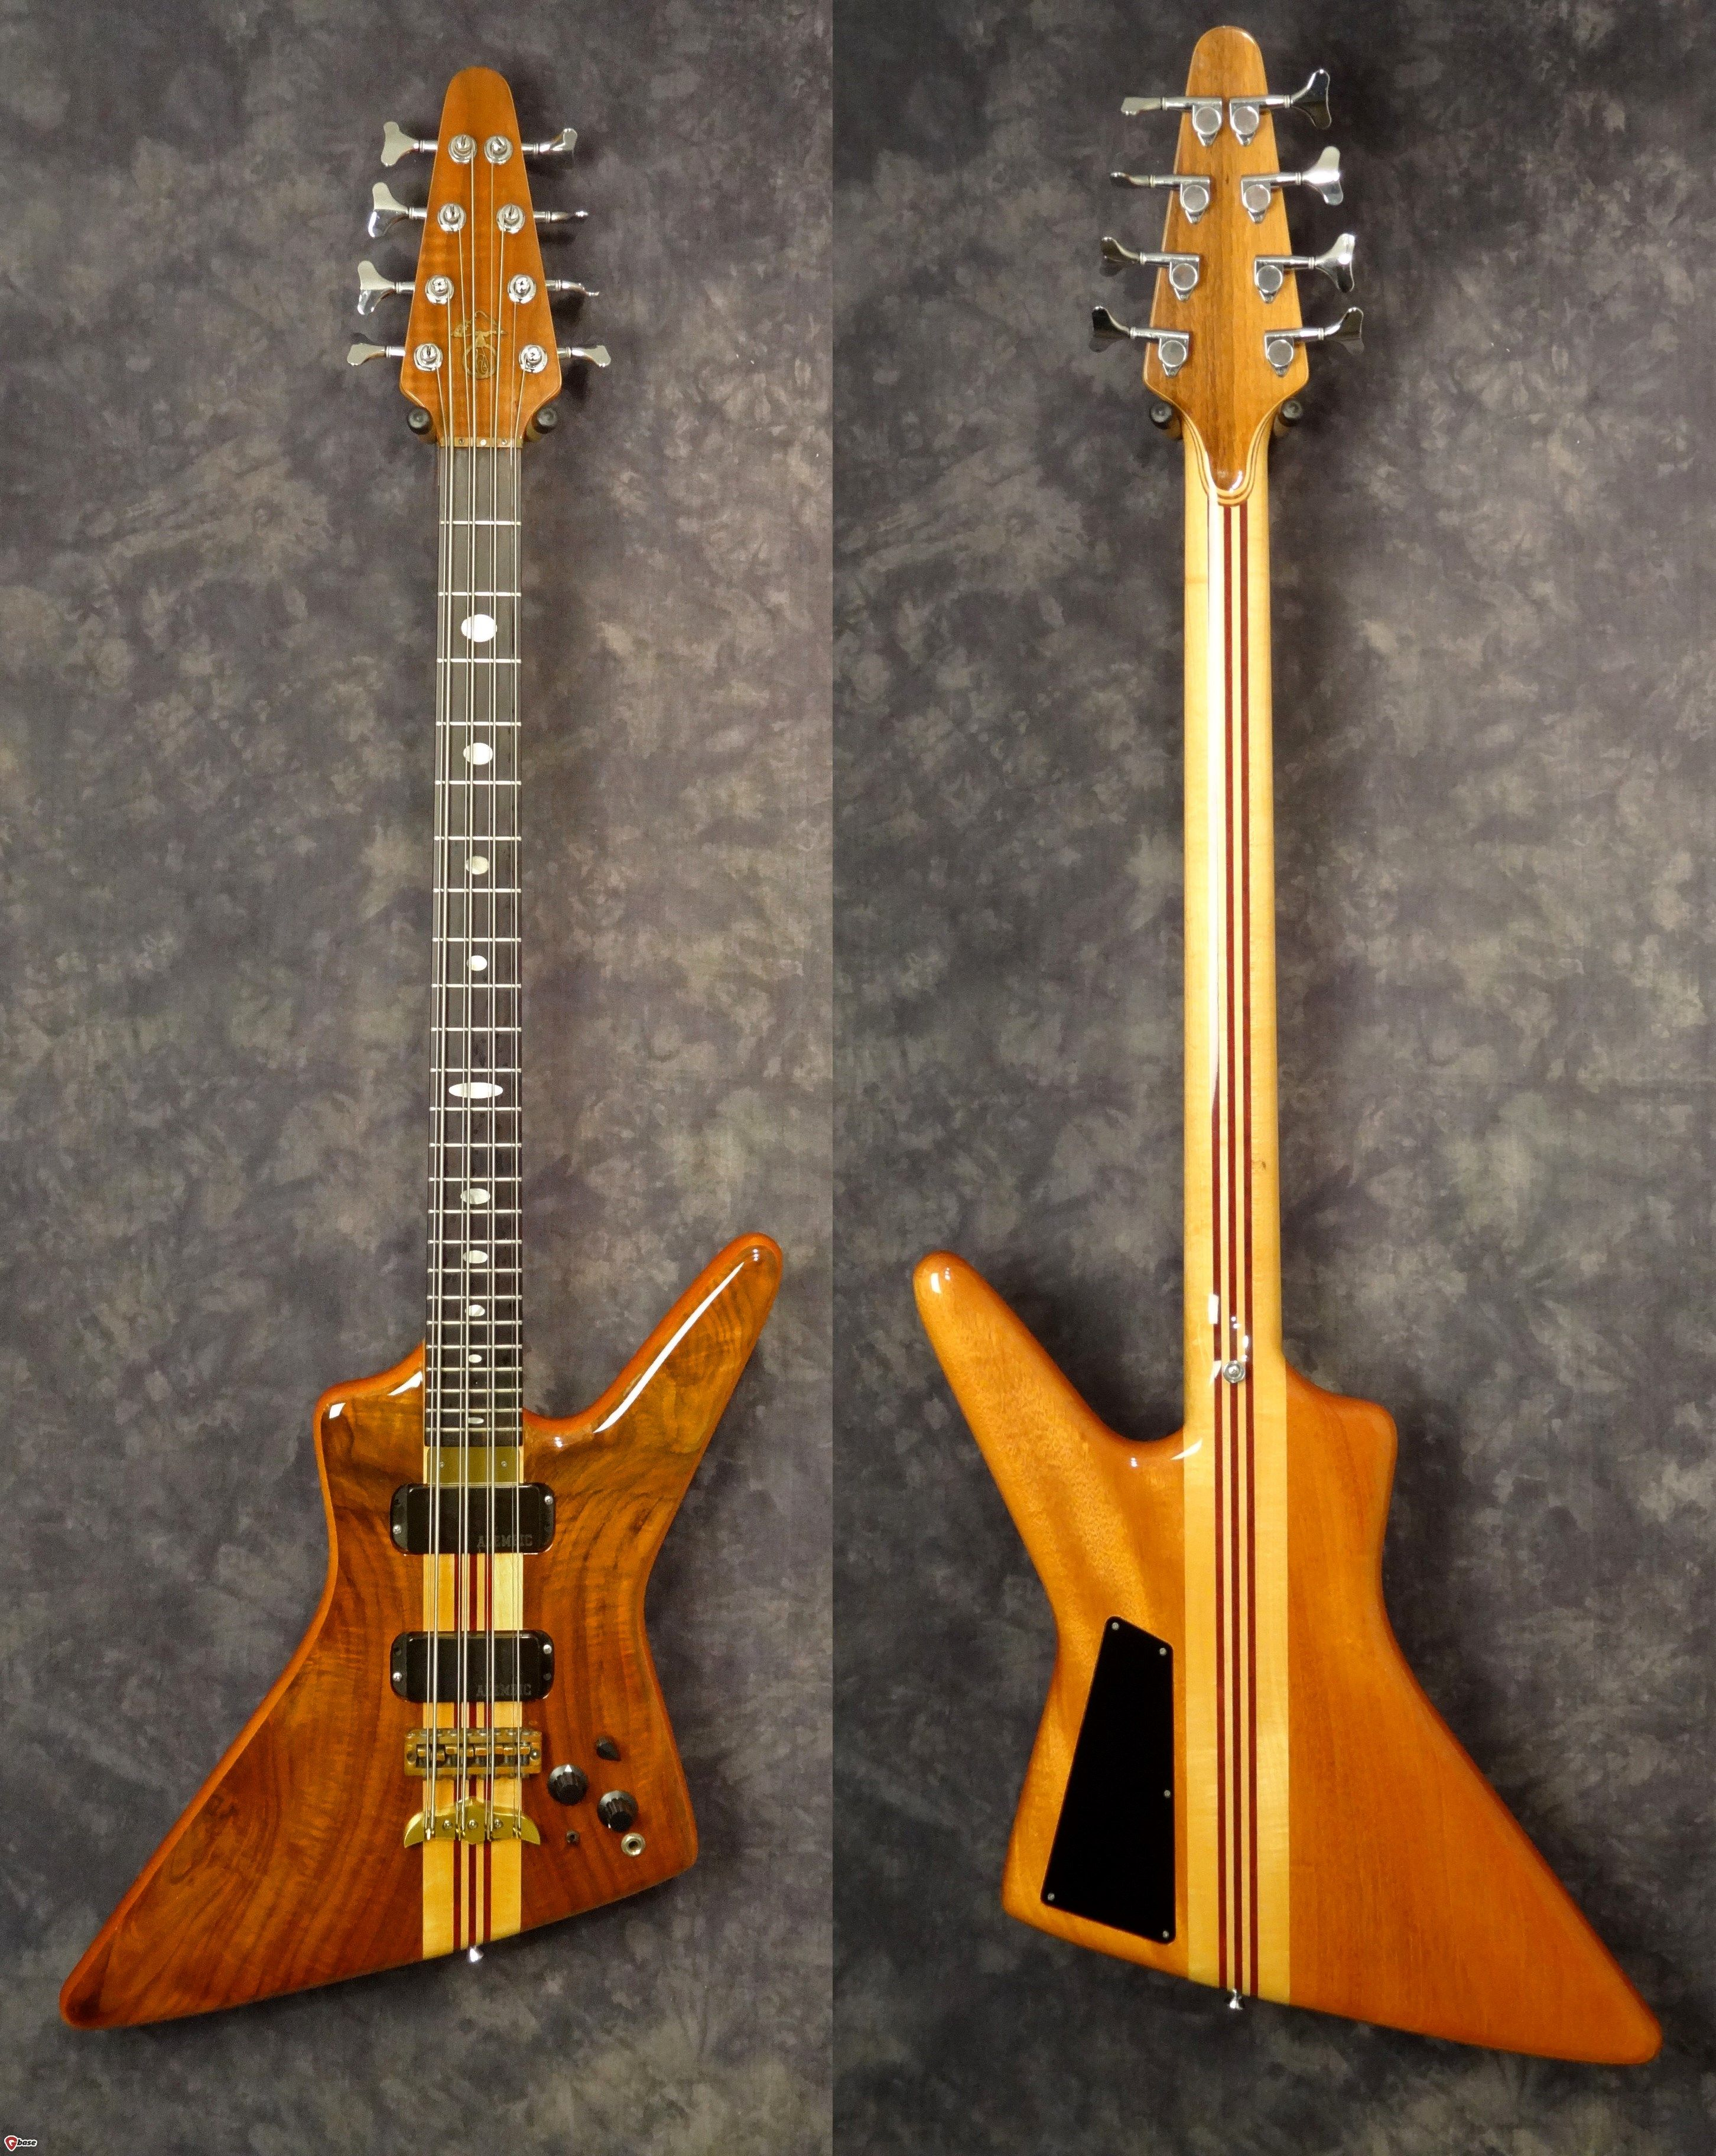 alembic exploiter eight string bass basses electric acoustic contra bass guitar bass. Black Bedroom Furniture Sets. Home Design Ideas